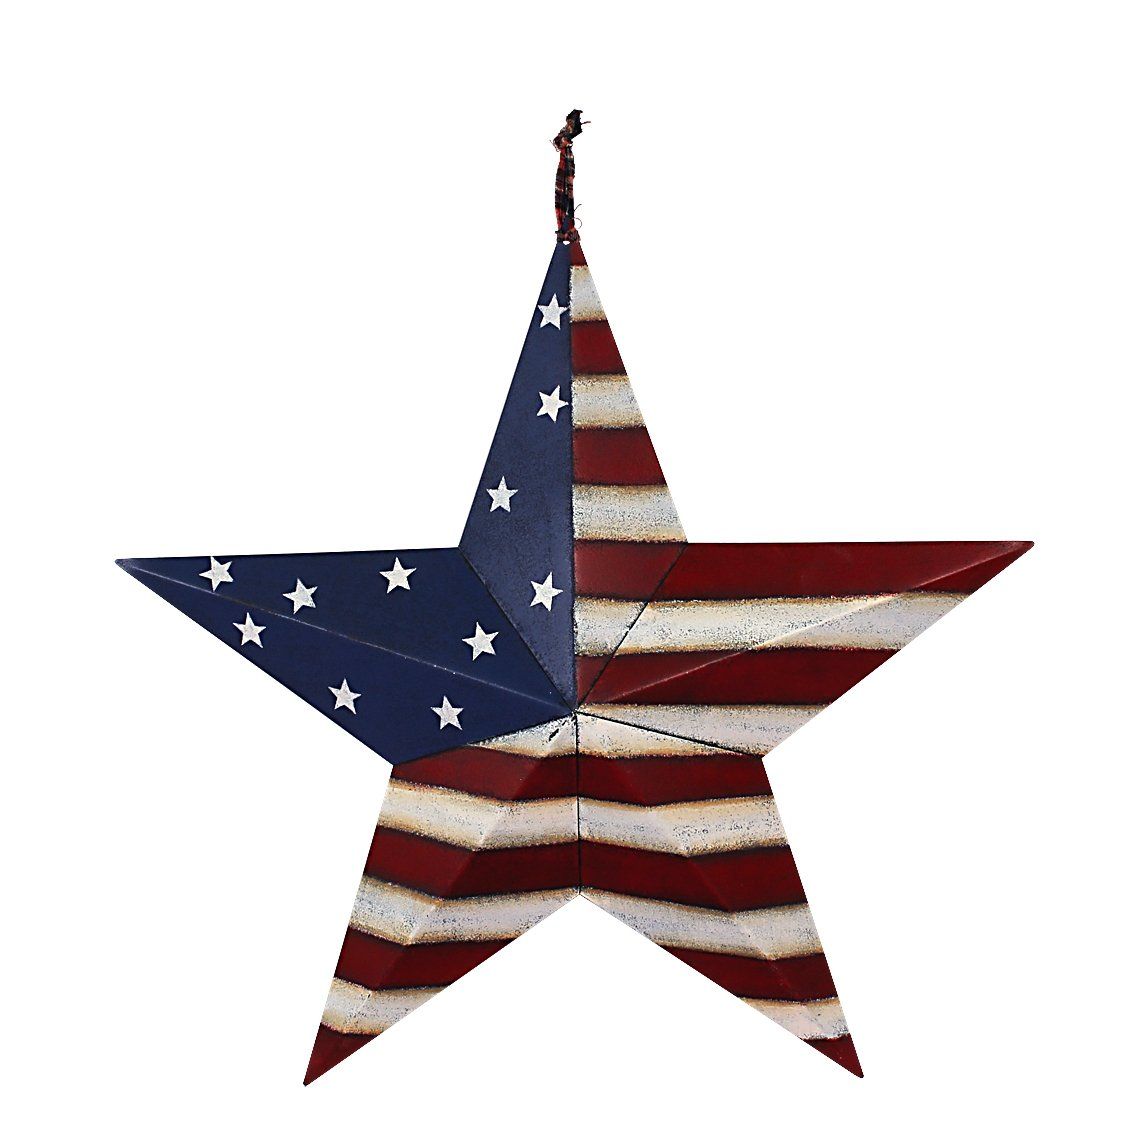 Y&K Decor Patriotic Old Glory American Flag Barn Star 4th of July Wall Decoration, (12)